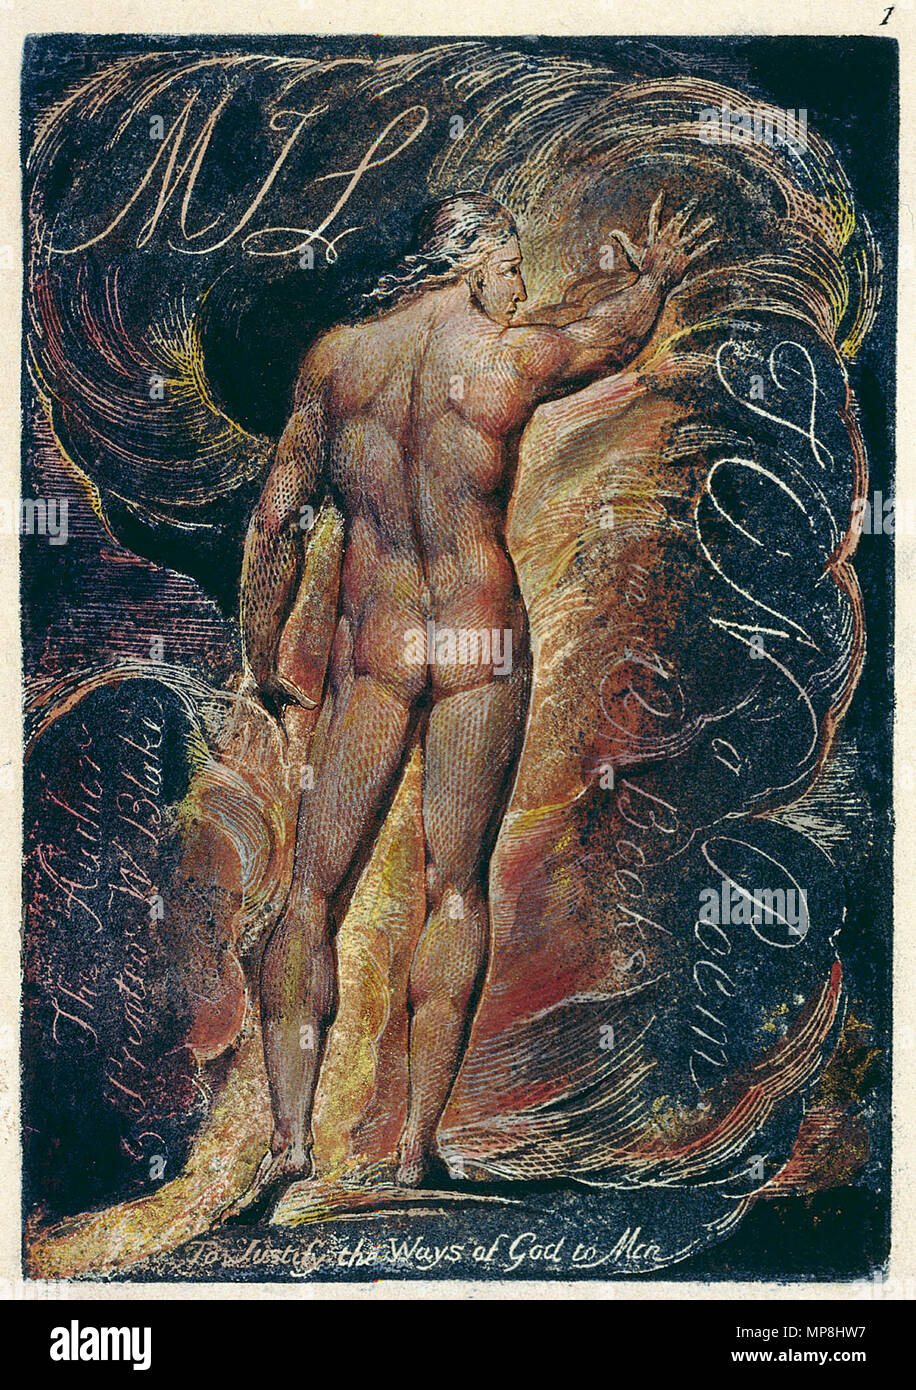 .  English: Milton a Poem copy D 1818 Library of Congress object 1 . circa 1818.    William Blake (1757–1827)   Alternative names W. Blake; Uil'iam Bleik  Description British painter, poet, writer, theologian, collector and engraver  Date of birth/death 28 November 1757 12 August 1827  Location of birth/death Broadwick Street Charing Cross  Work location London  Authority control  : Q41513 VIAF:54144439 ISNI:0000 0001 2096 135X ULAN:500012489 LCCN:n78095331 NLA:35019221 WorldCat 895 Milton a Poem copy D 1818 Library of Congress object 1 Stock Photo